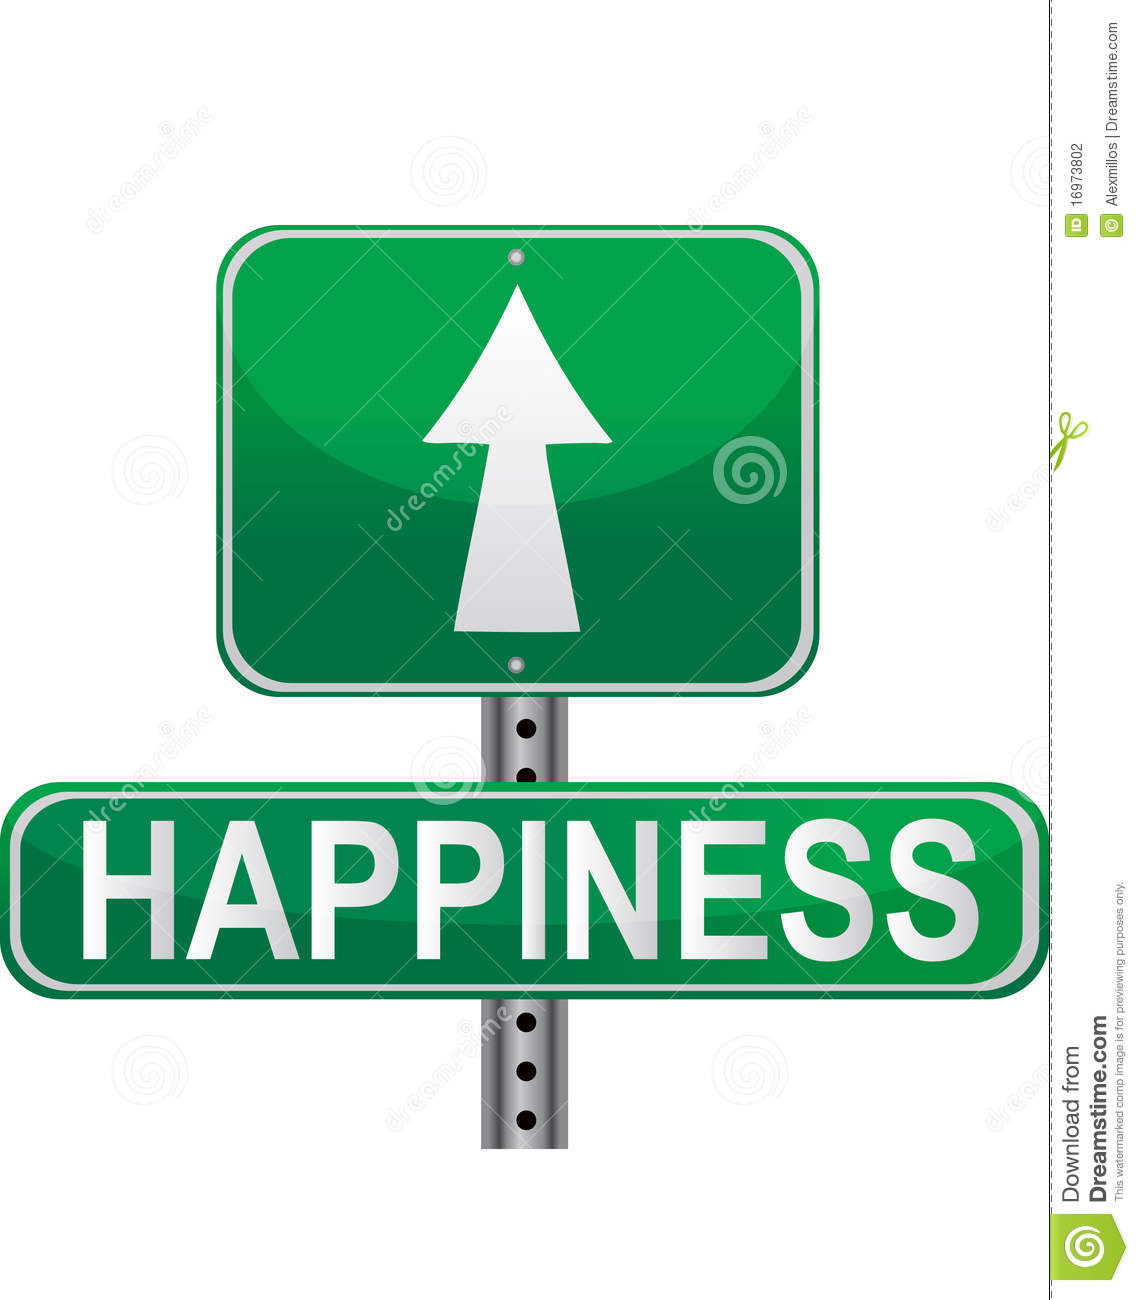 What Does It Take to Be Happy?